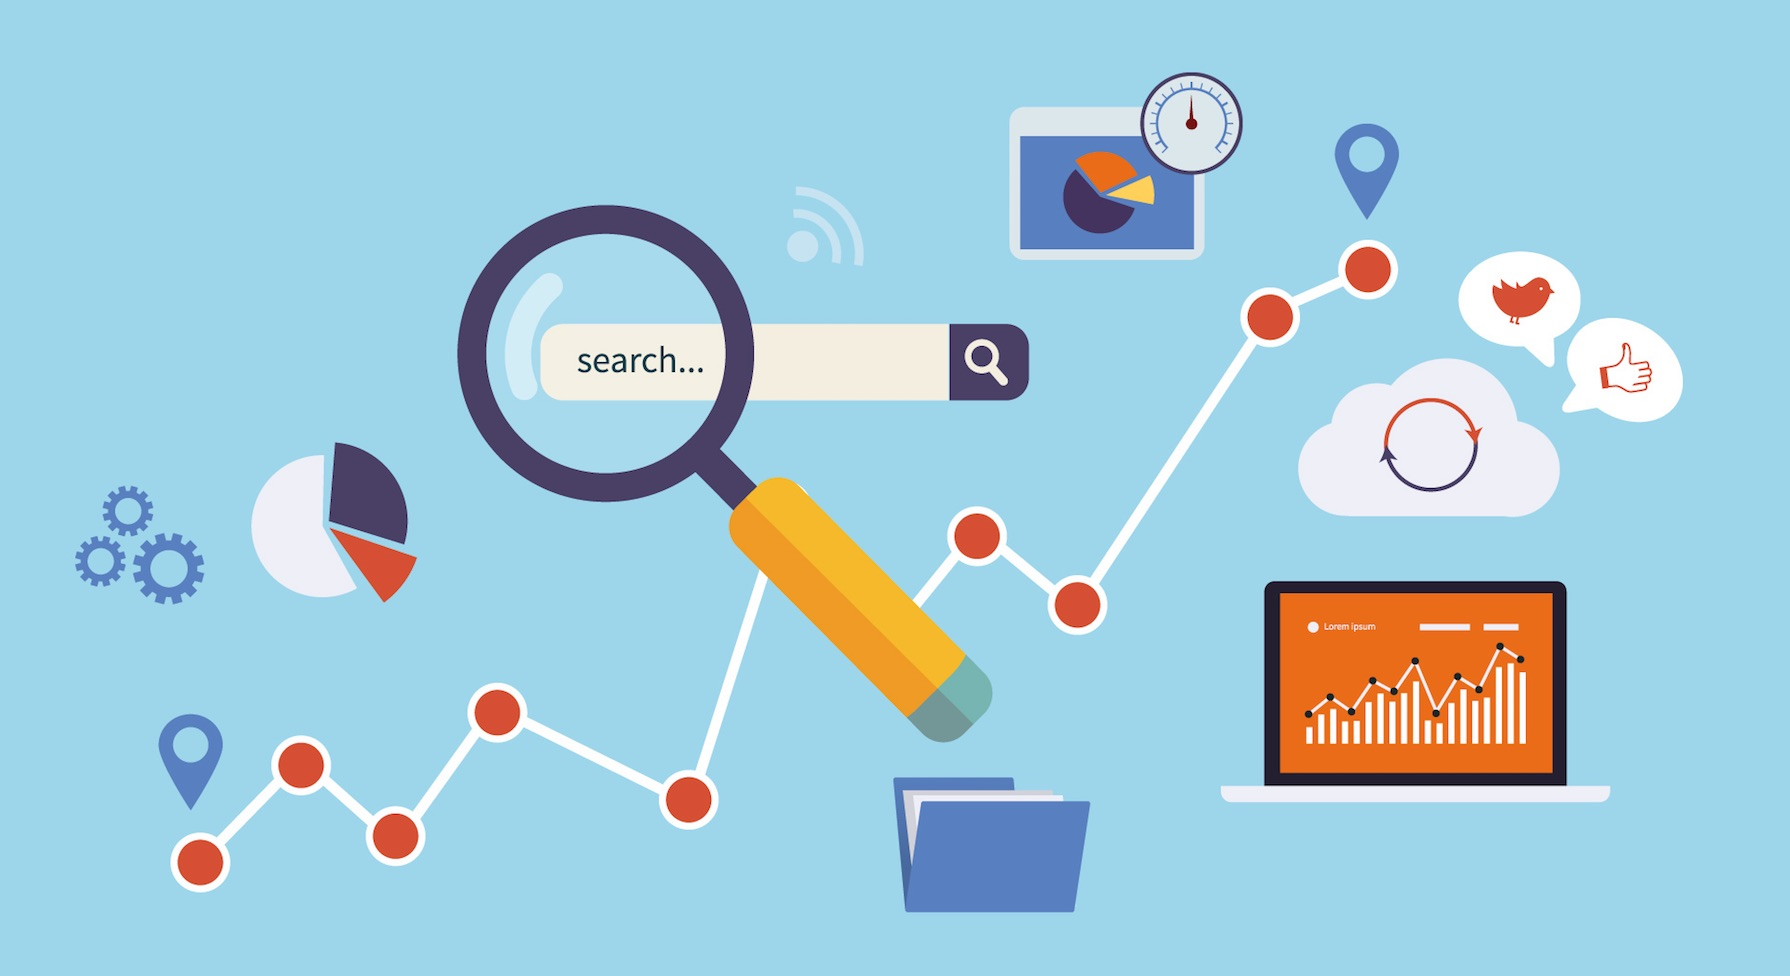 7 Benefits of SEO – Search Engine Optimization